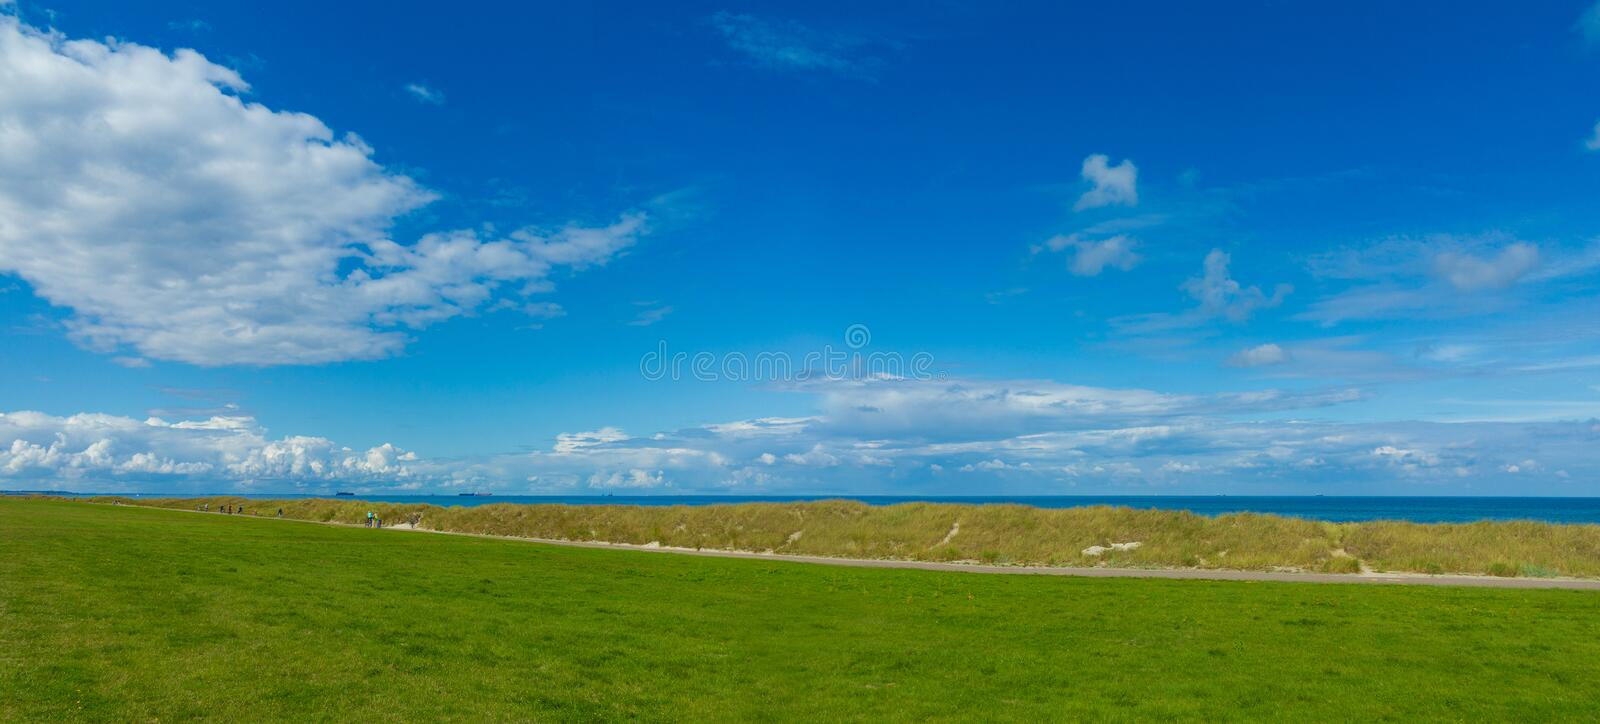 Panoramic landscpae with dunes, dyke and the baltic sea royalty free stock photography